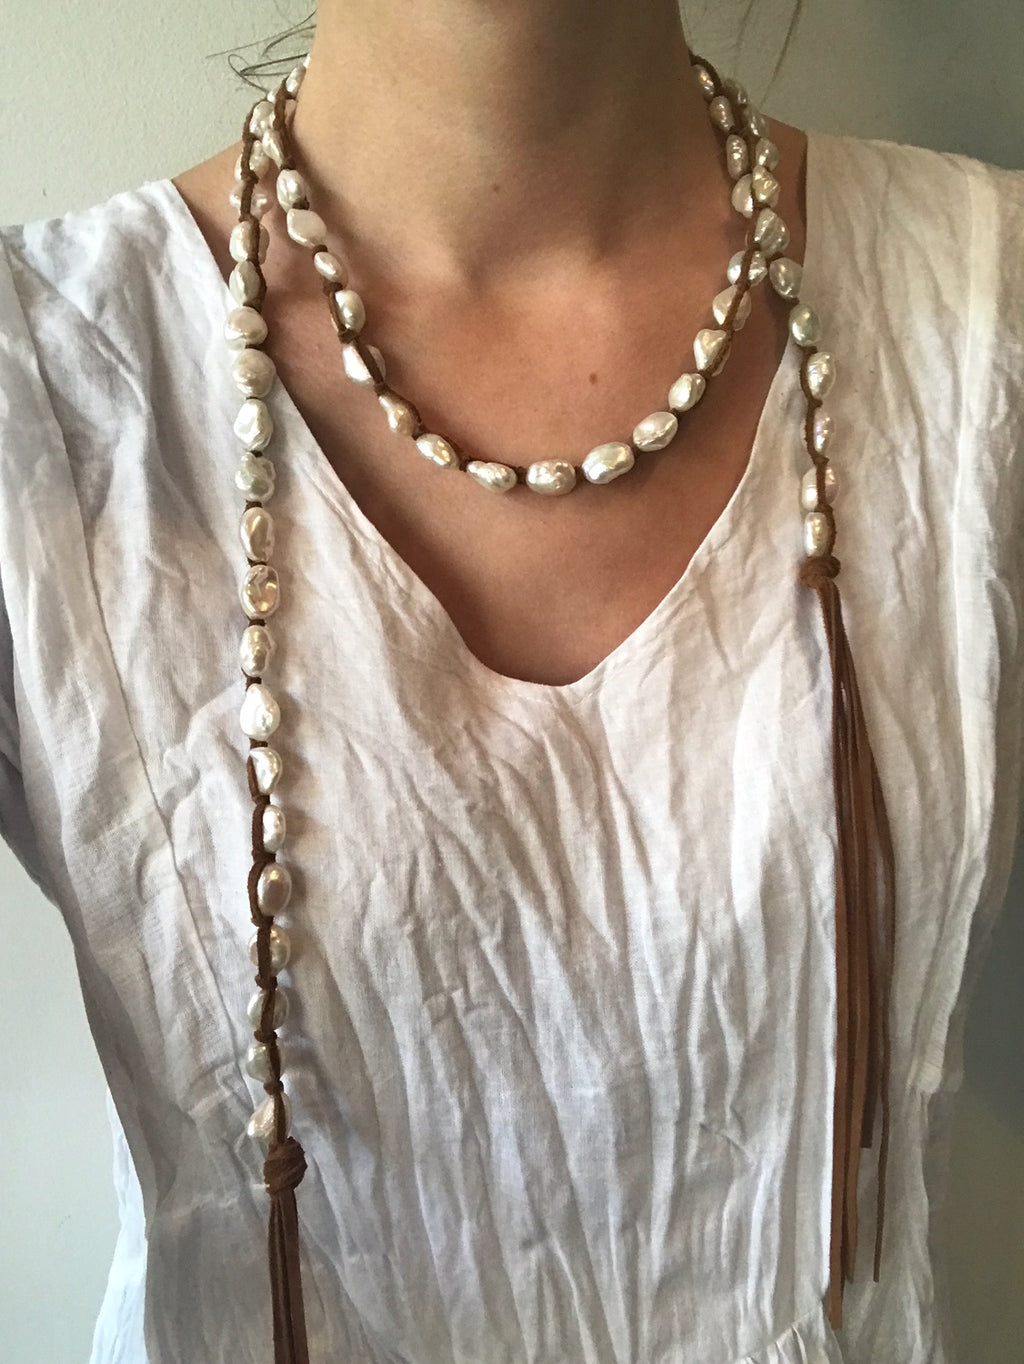 #3A Medium White Pearl Necklace